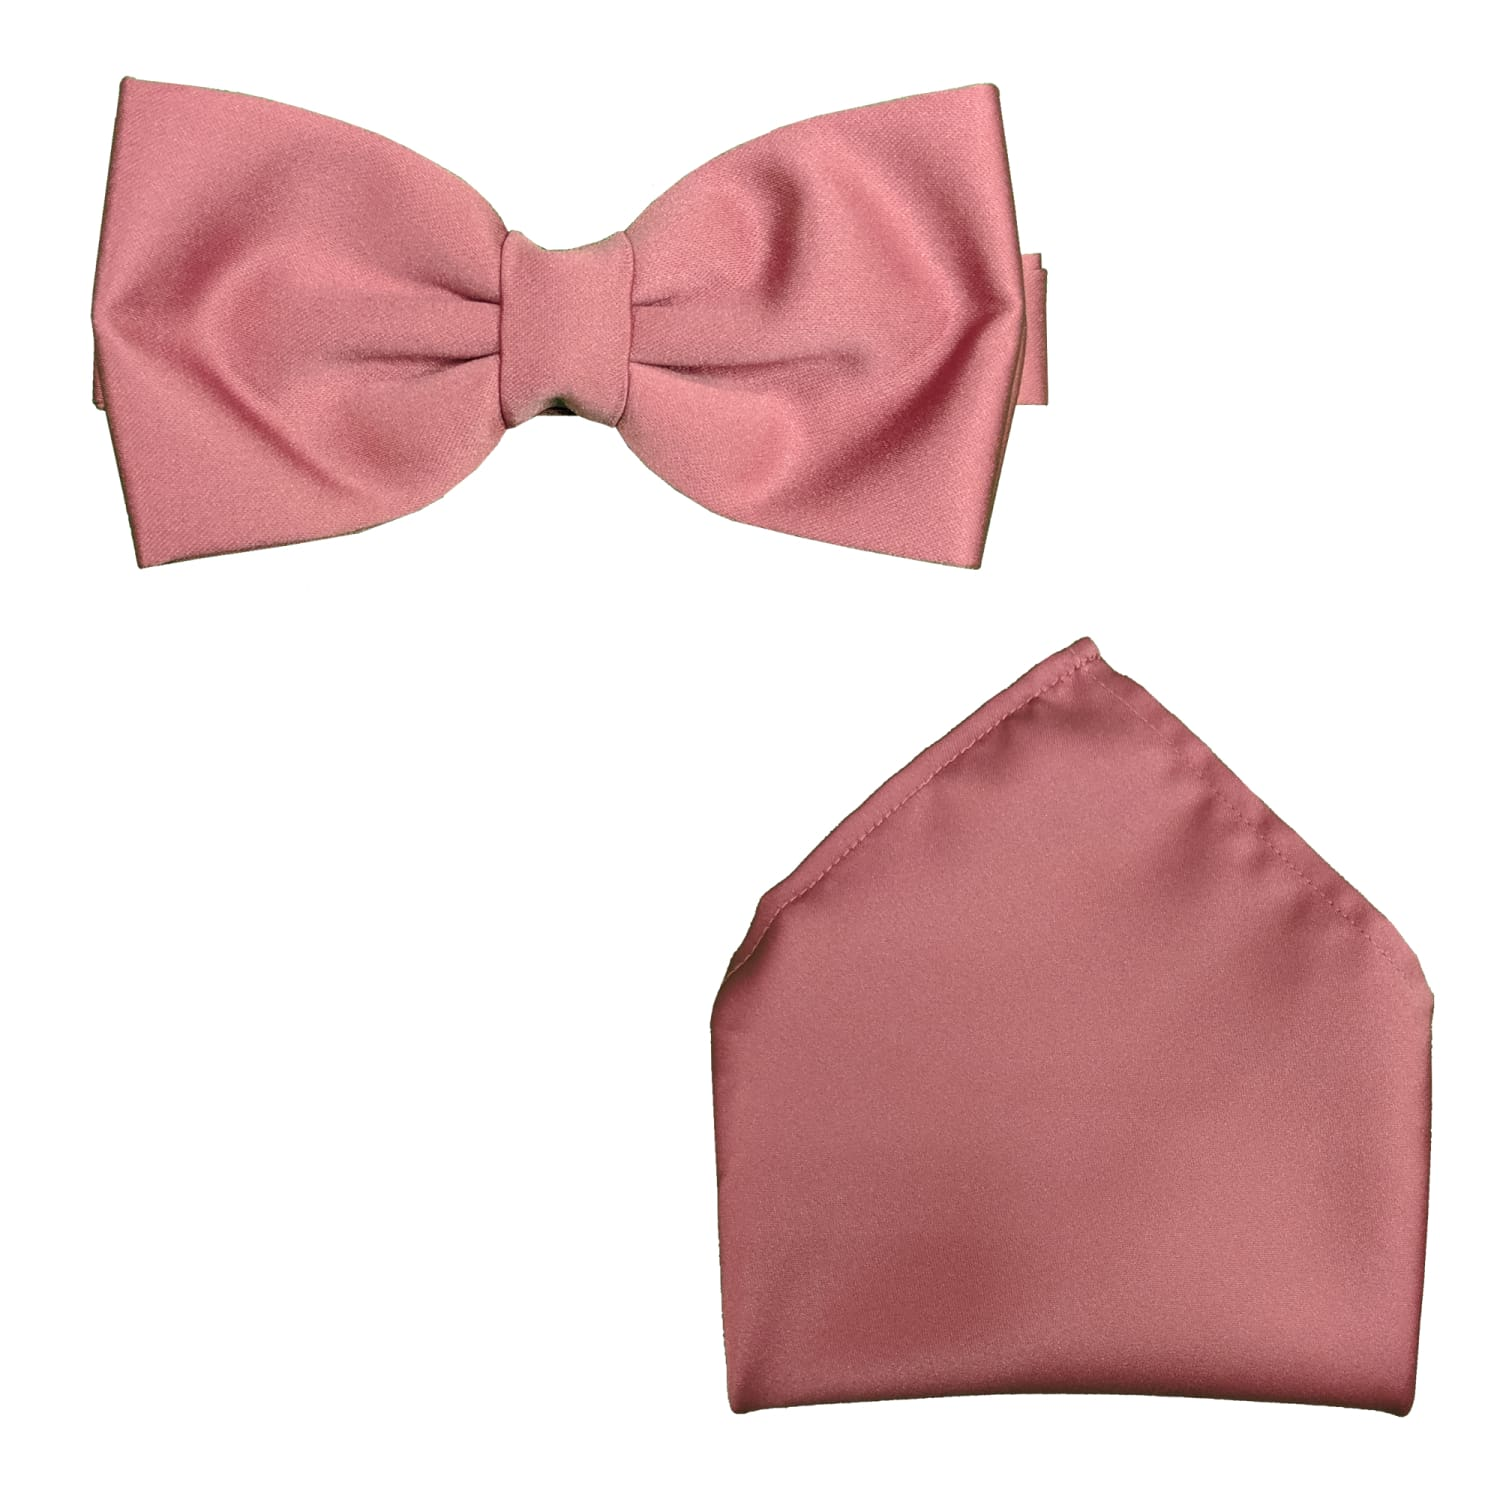 Folkespeare Bow Tie & Pocket Square Set - BK0030 - Dusty Pink 1